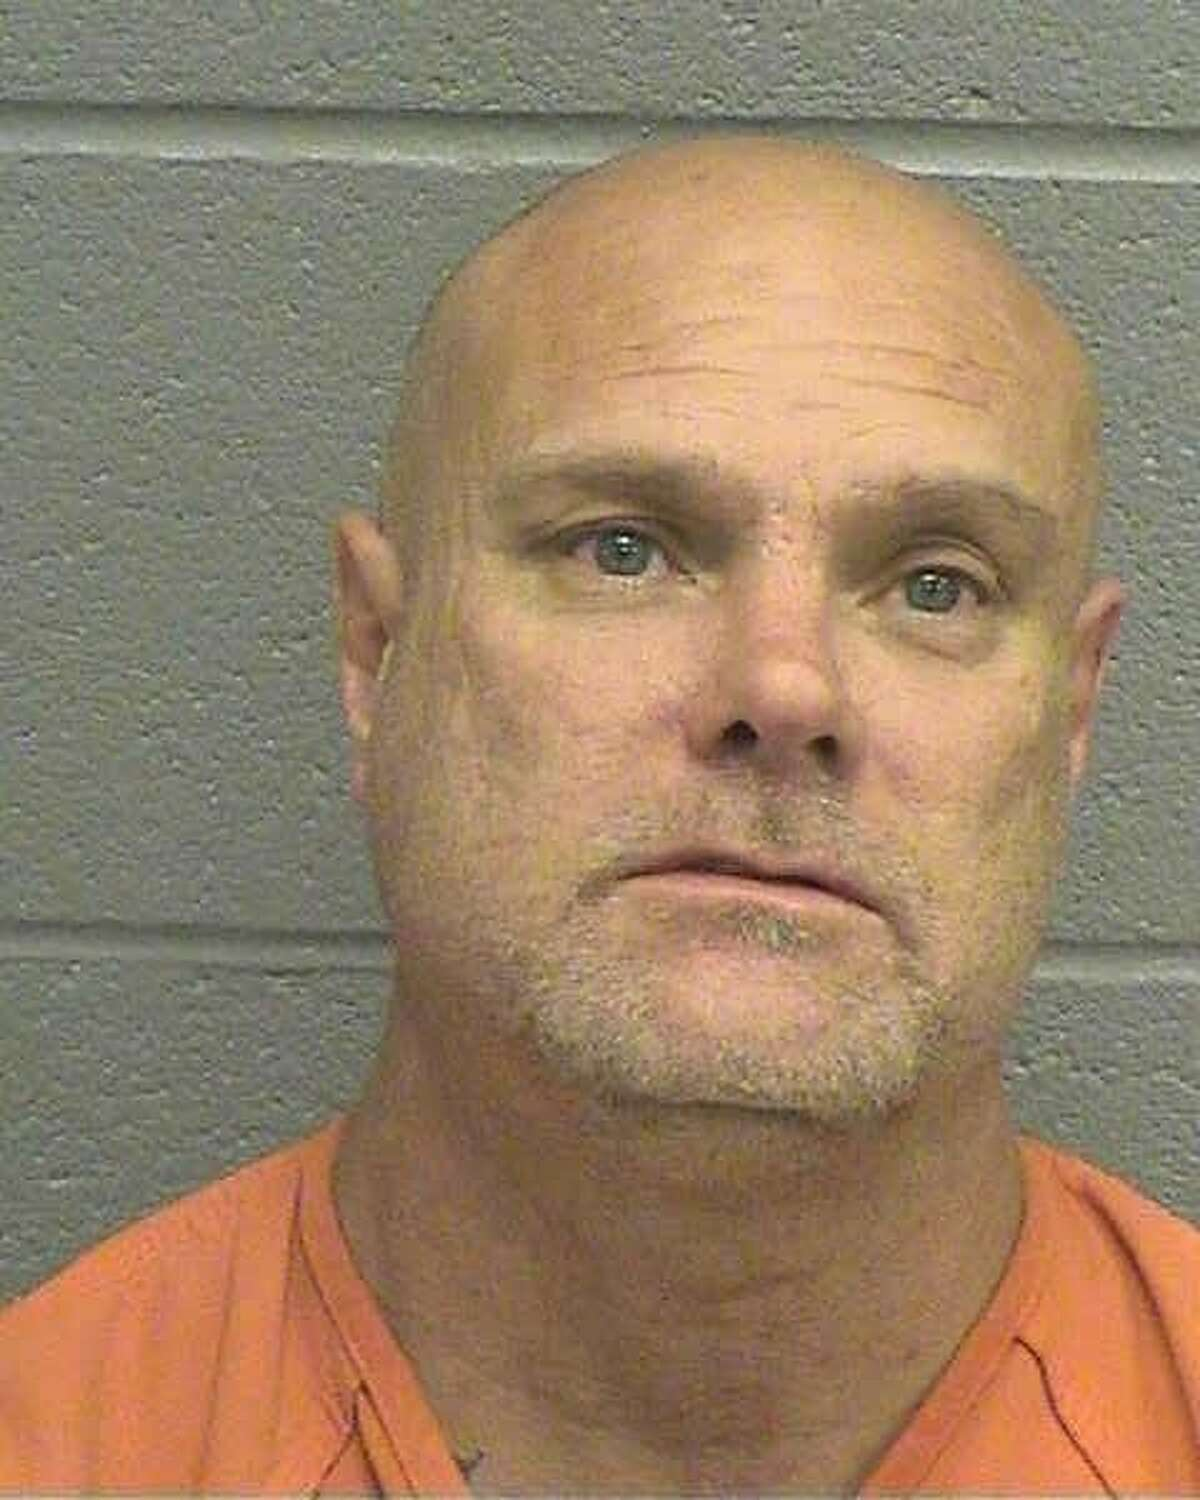 William Donald Bzdon, 48, was charged Oct.8 with a third-degree felony of assaulting a family or household member by impeding breathing. He was being held Oct.9 night on a $50,000 bond. Bzdon wasarrested after allegedly choking a woman and throwing a knife in her direction, according to court documents.